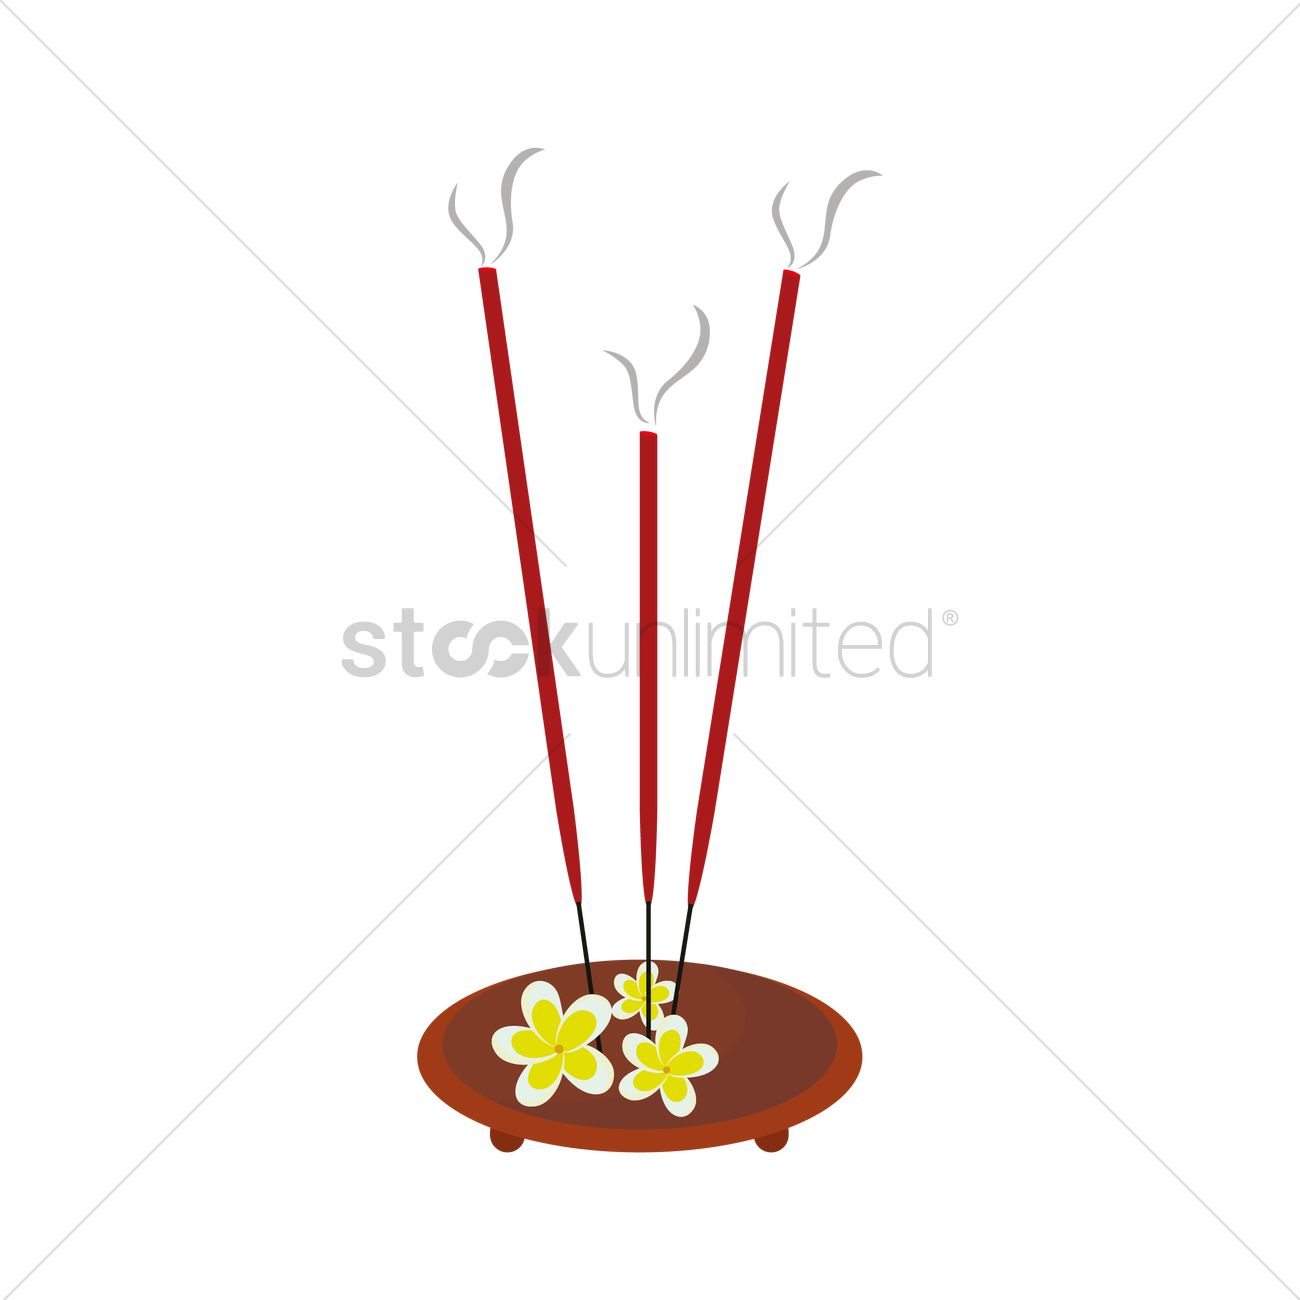 Incense sticks and stand Vector Image.